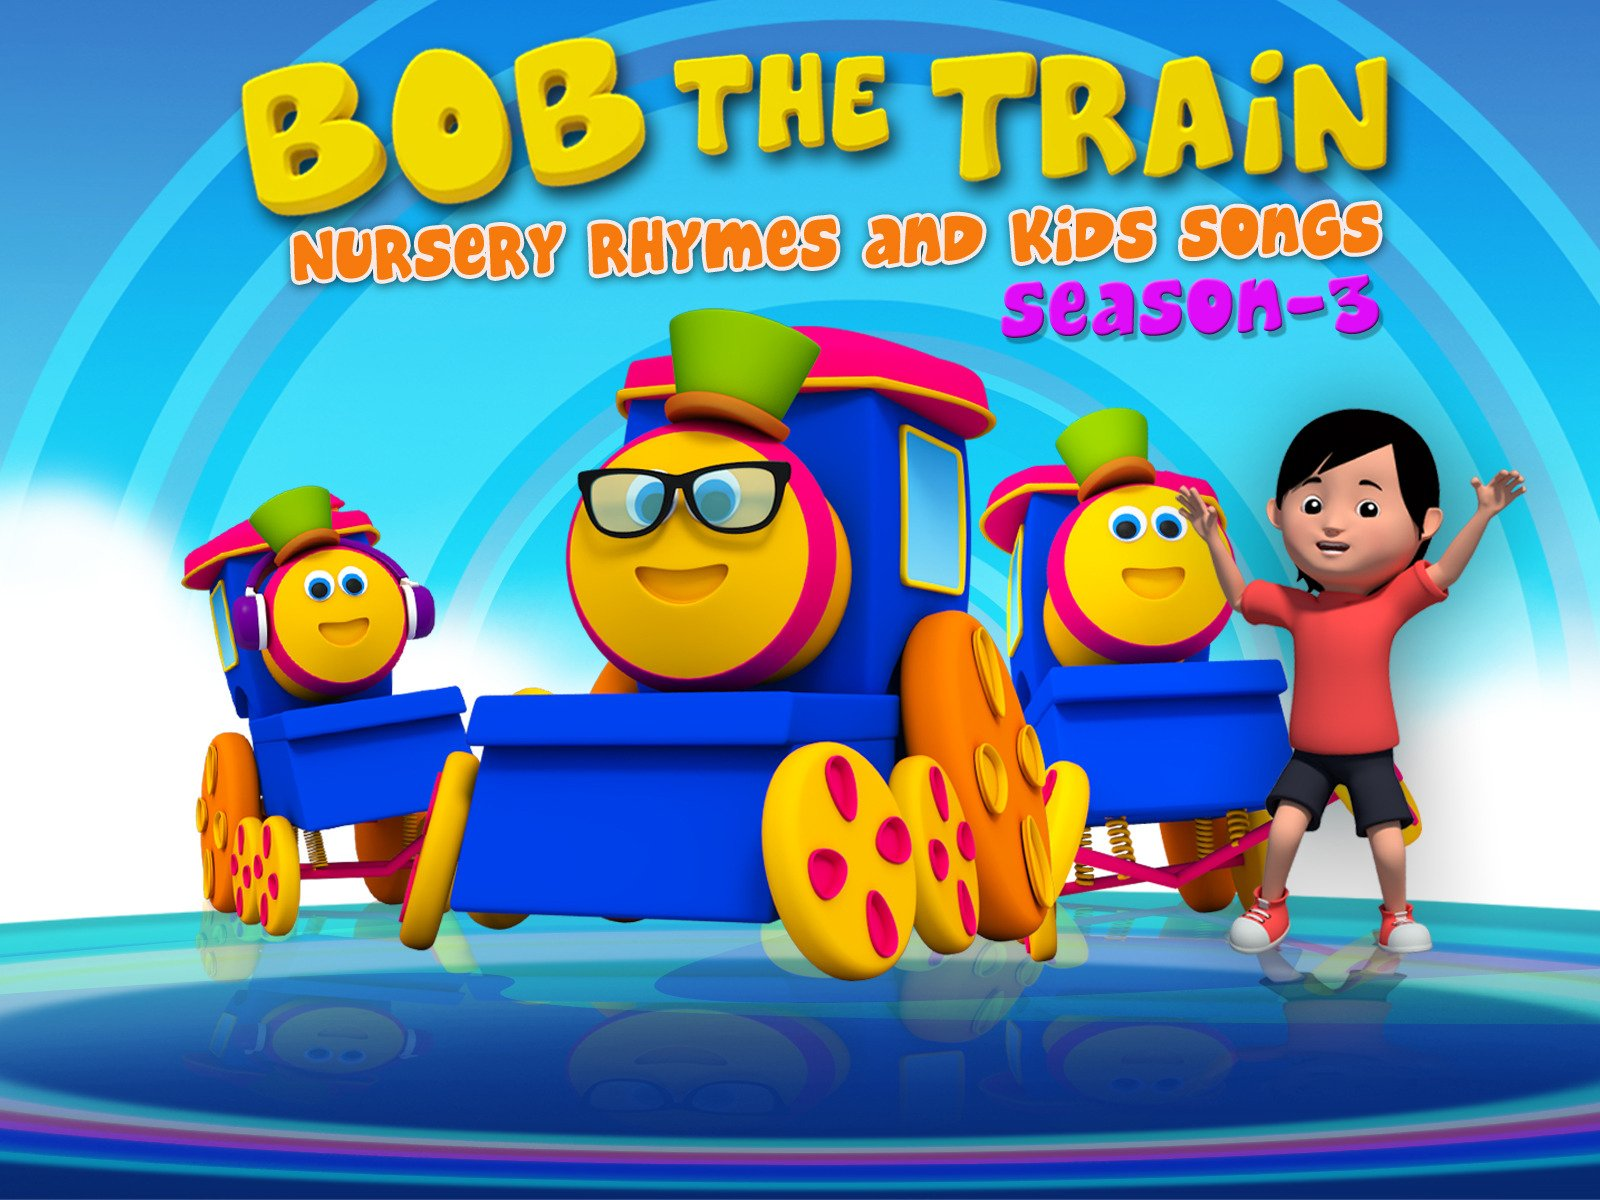 Bob the Train: Nursery Rhymes and Kids Songs - Season 3